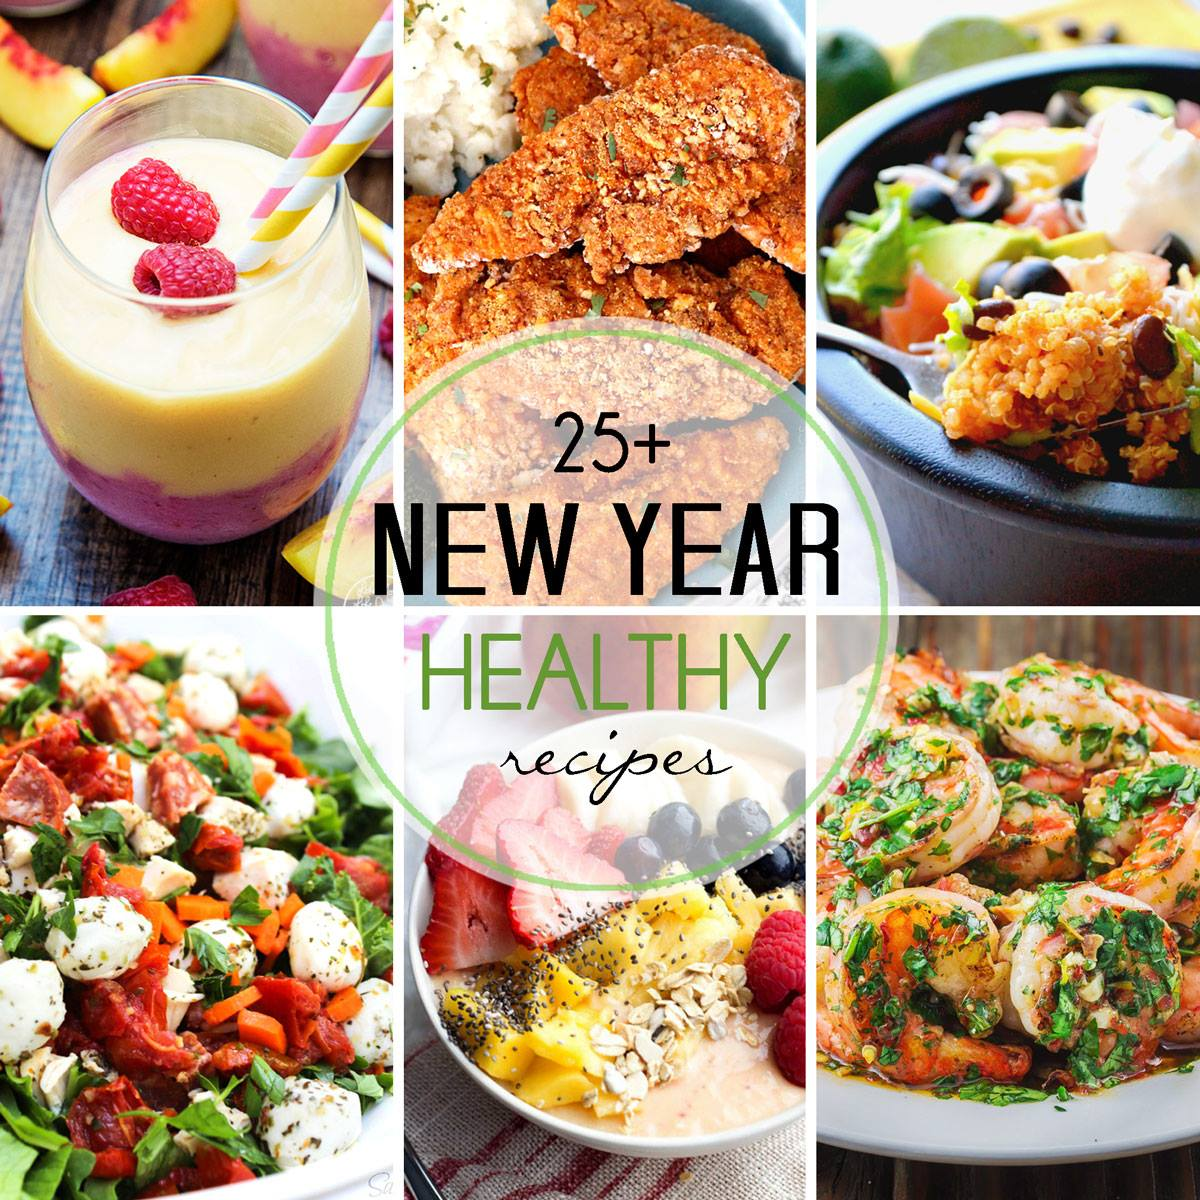 25 healthy recipes for the new year over 25 recipes that are perfect for the new year healthy choices made easy forumfinder Gallery